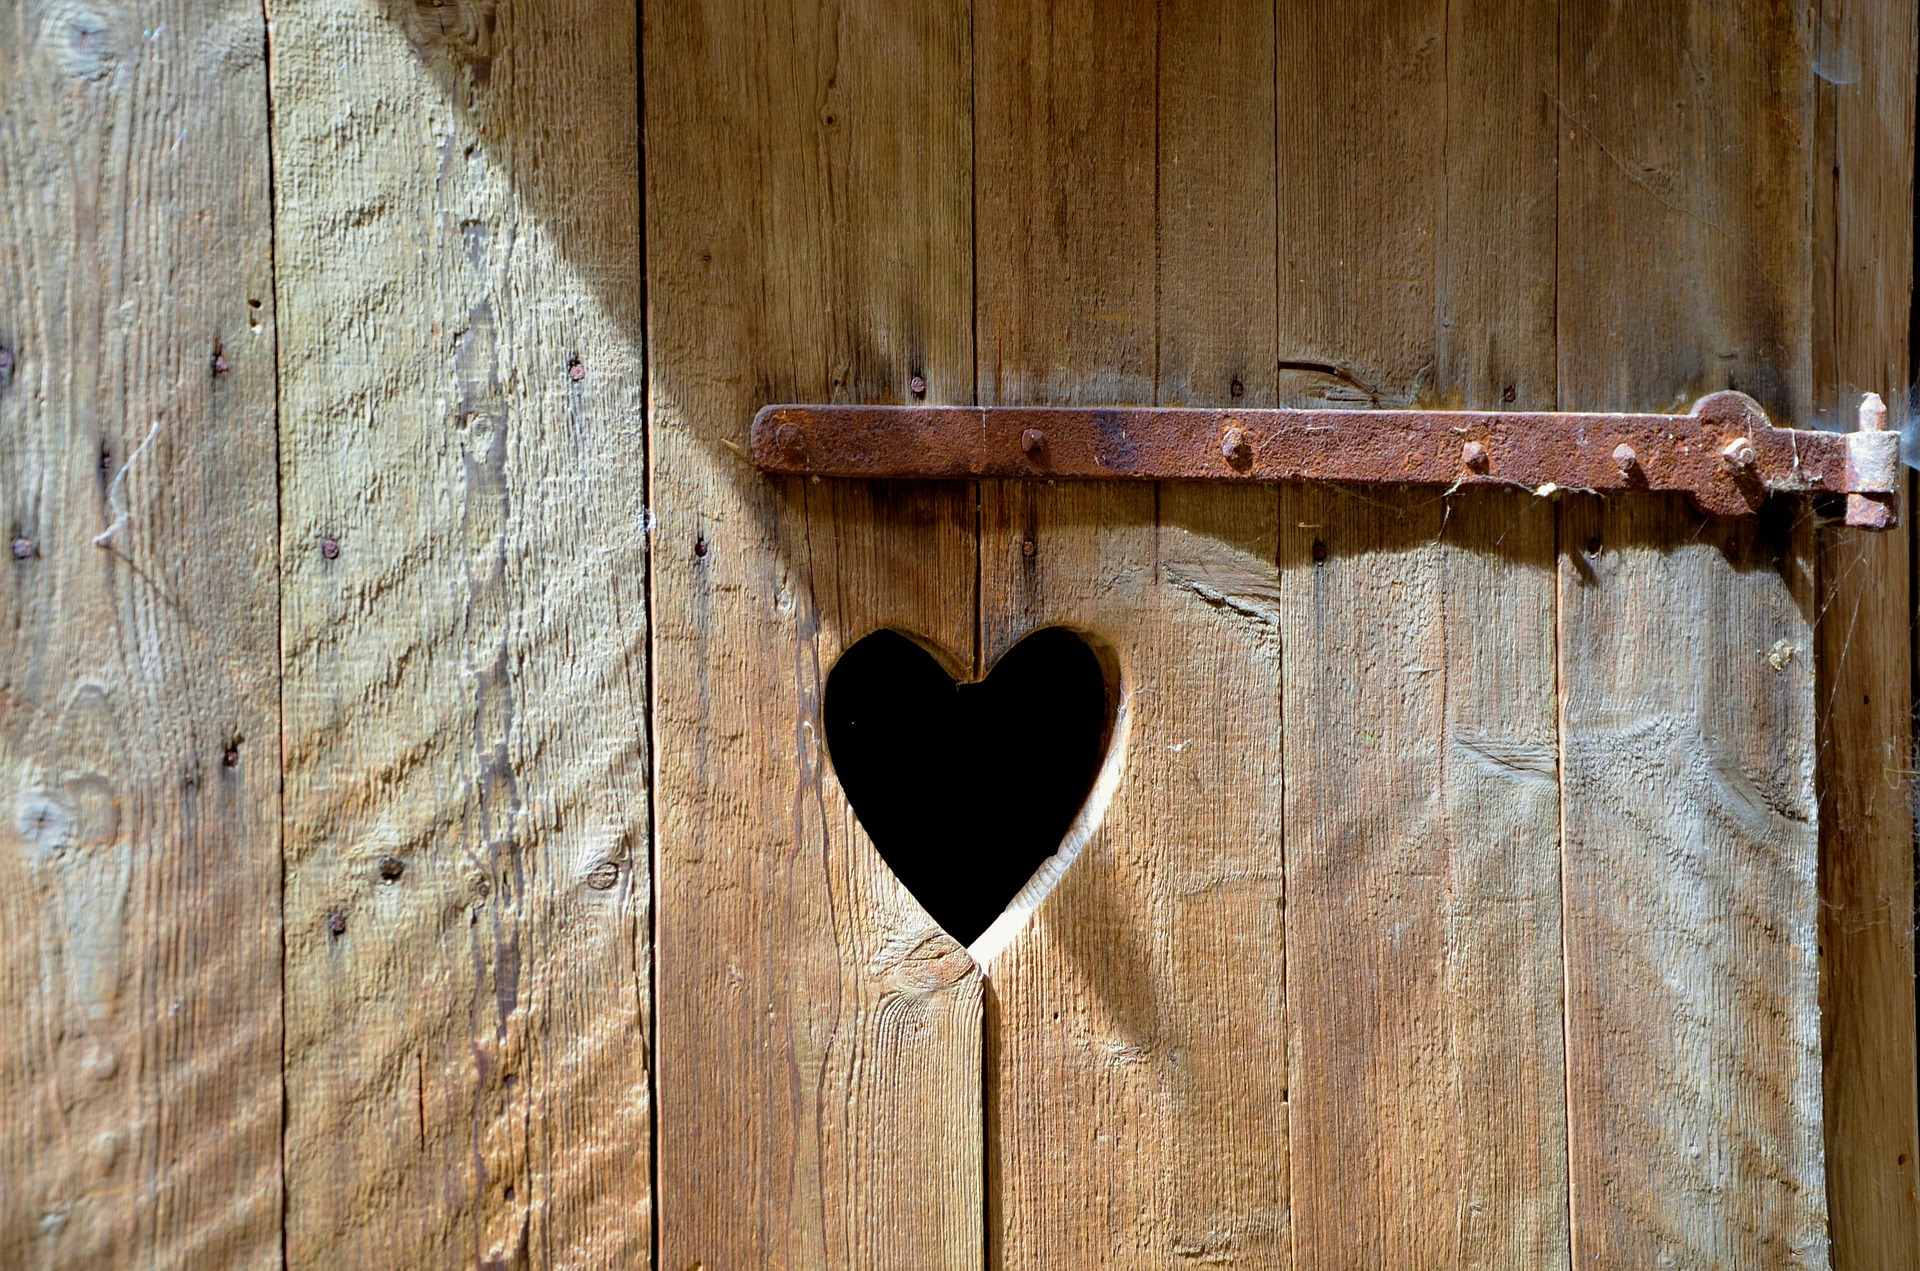 a wooden door with a heart shaped hold